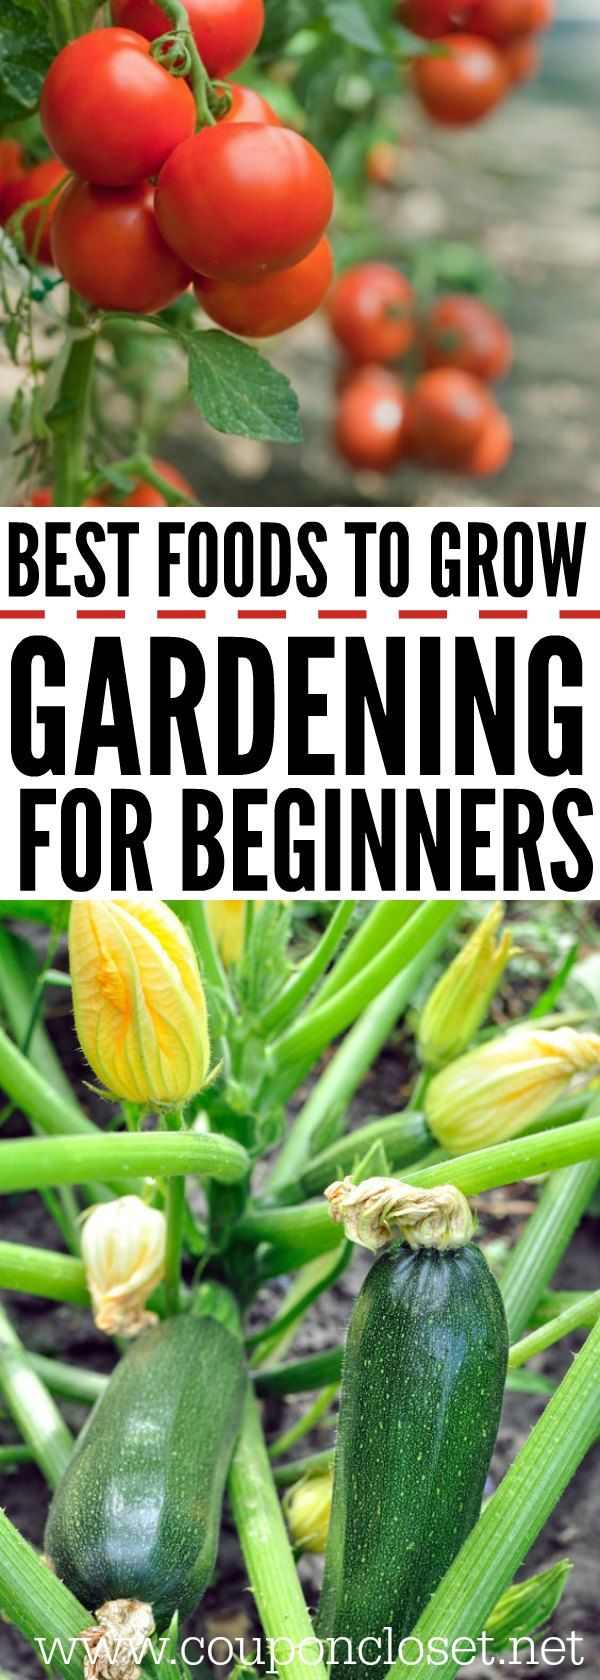 gardening for beginners best foods to grow first